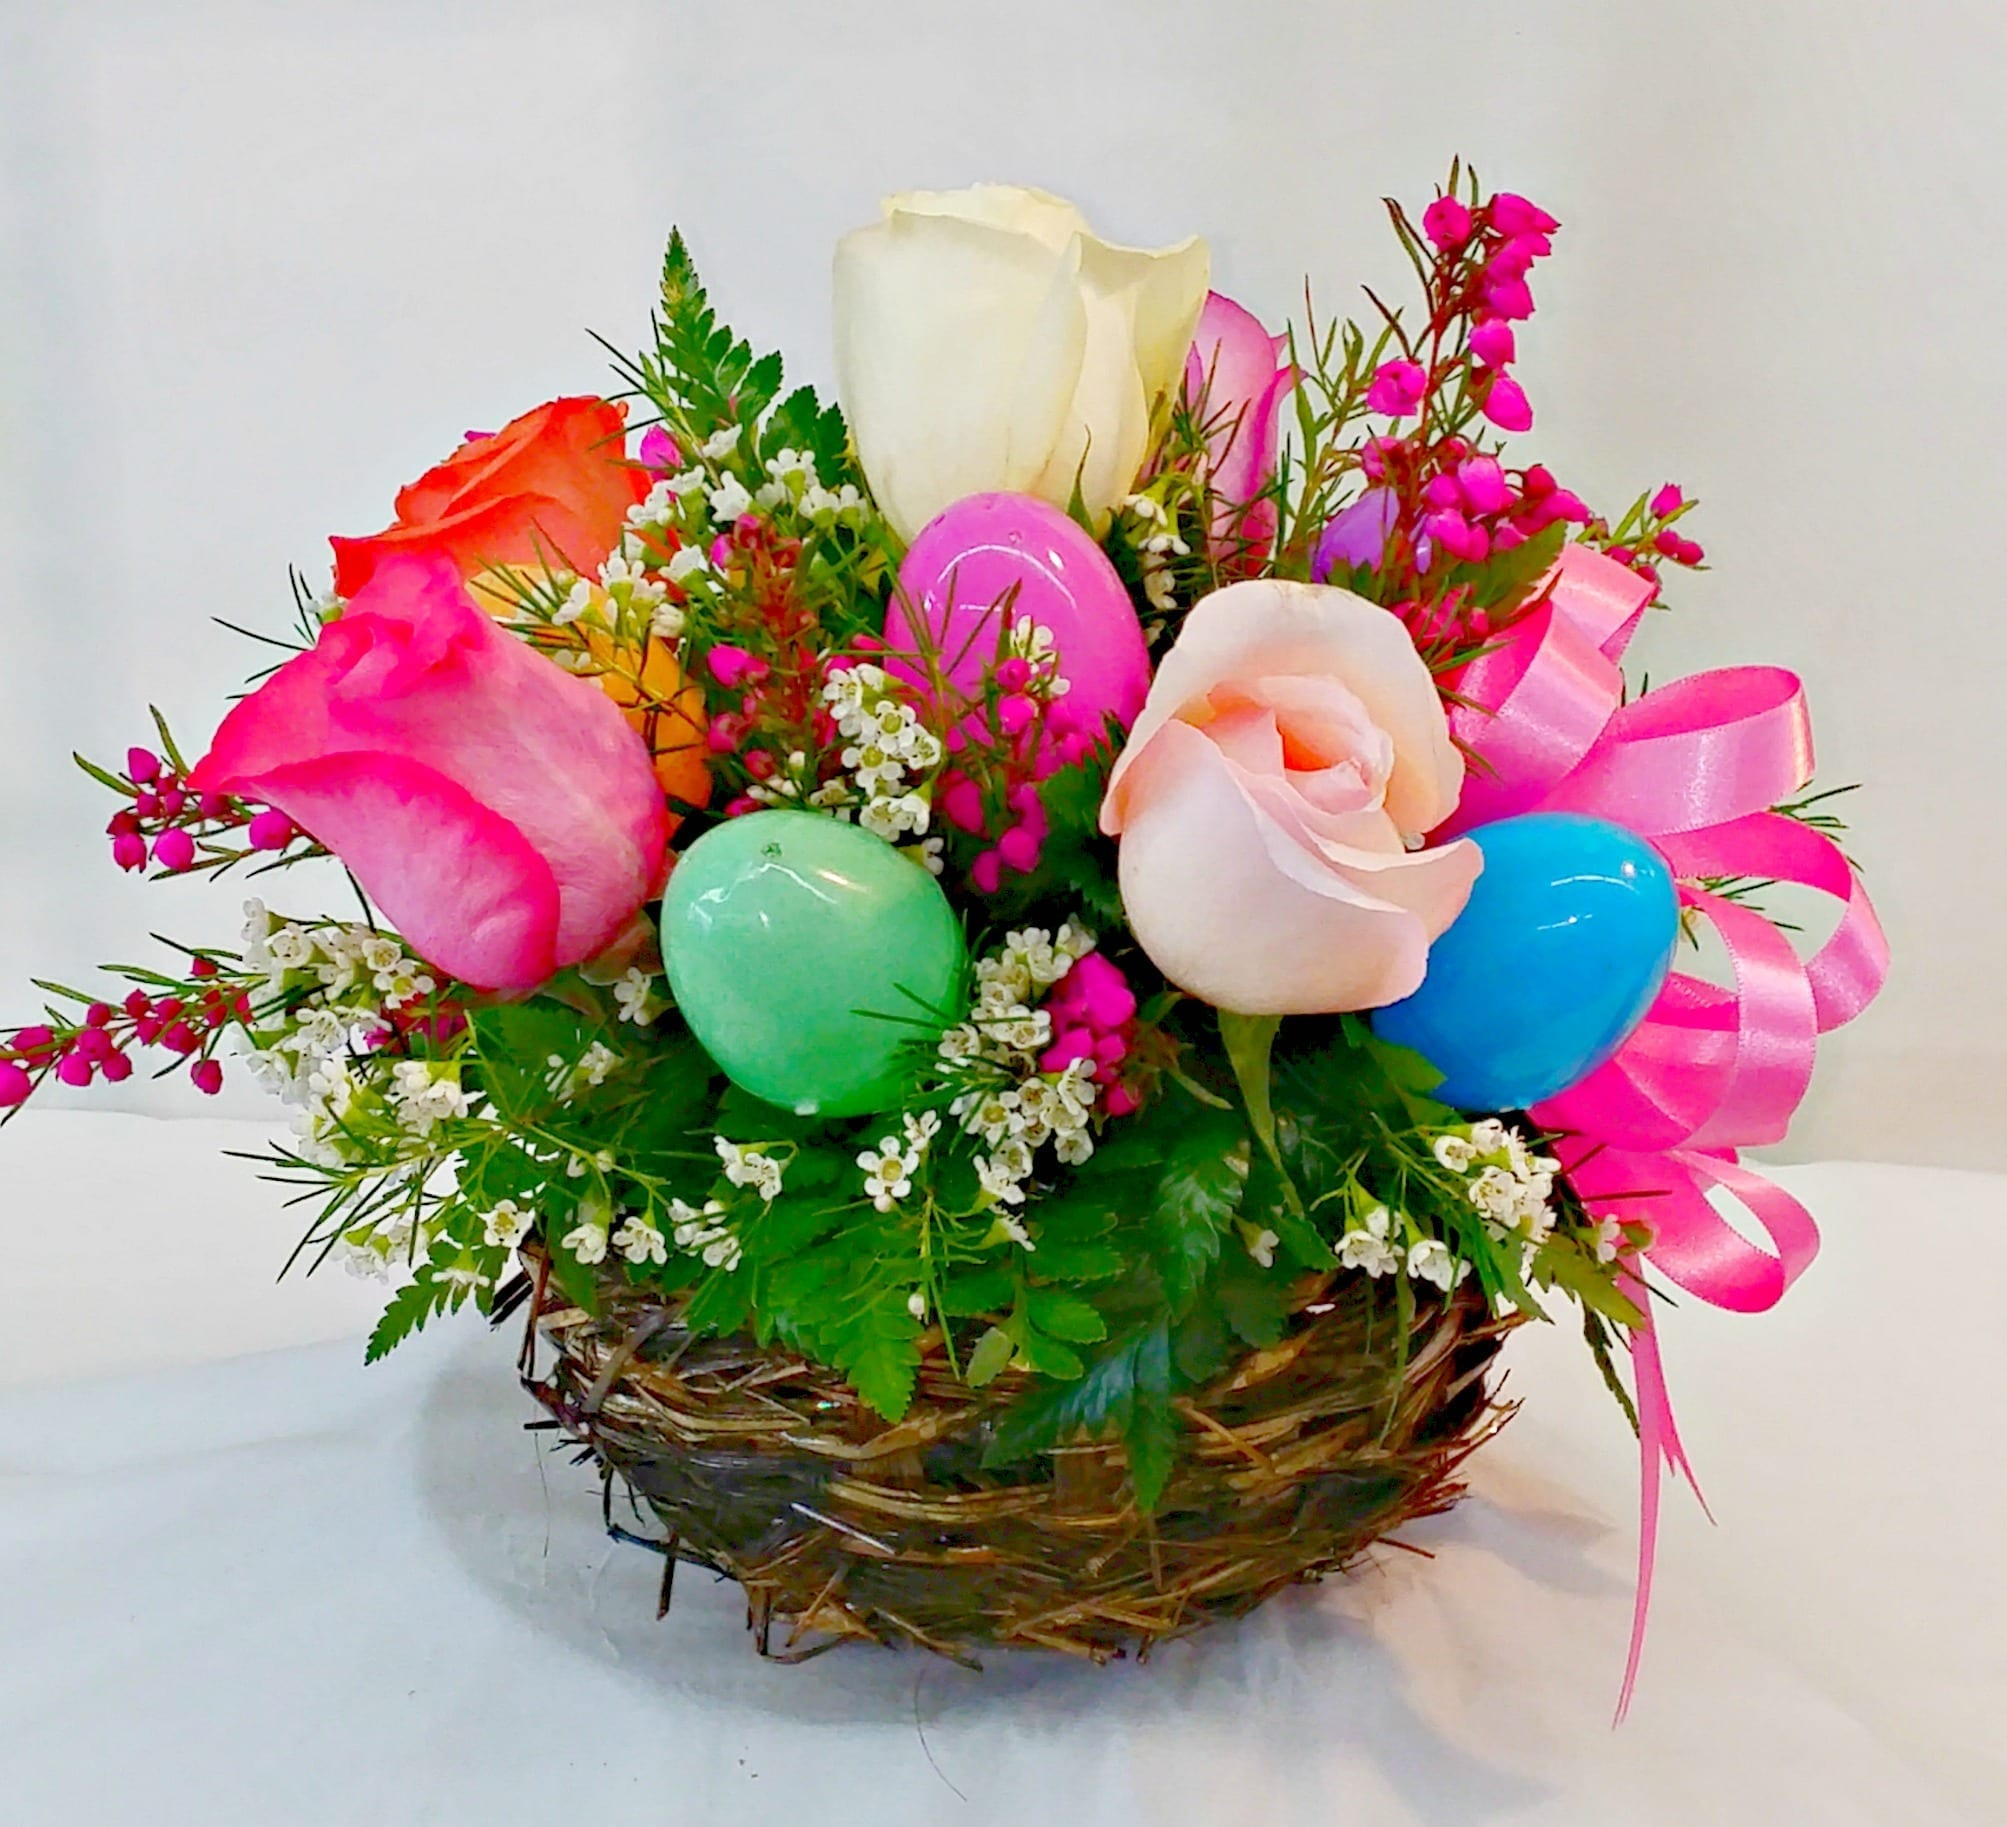 Fiesta easter nest 4499 if 834 1 fiesta flowers plants gifts easter nest negle Image collections